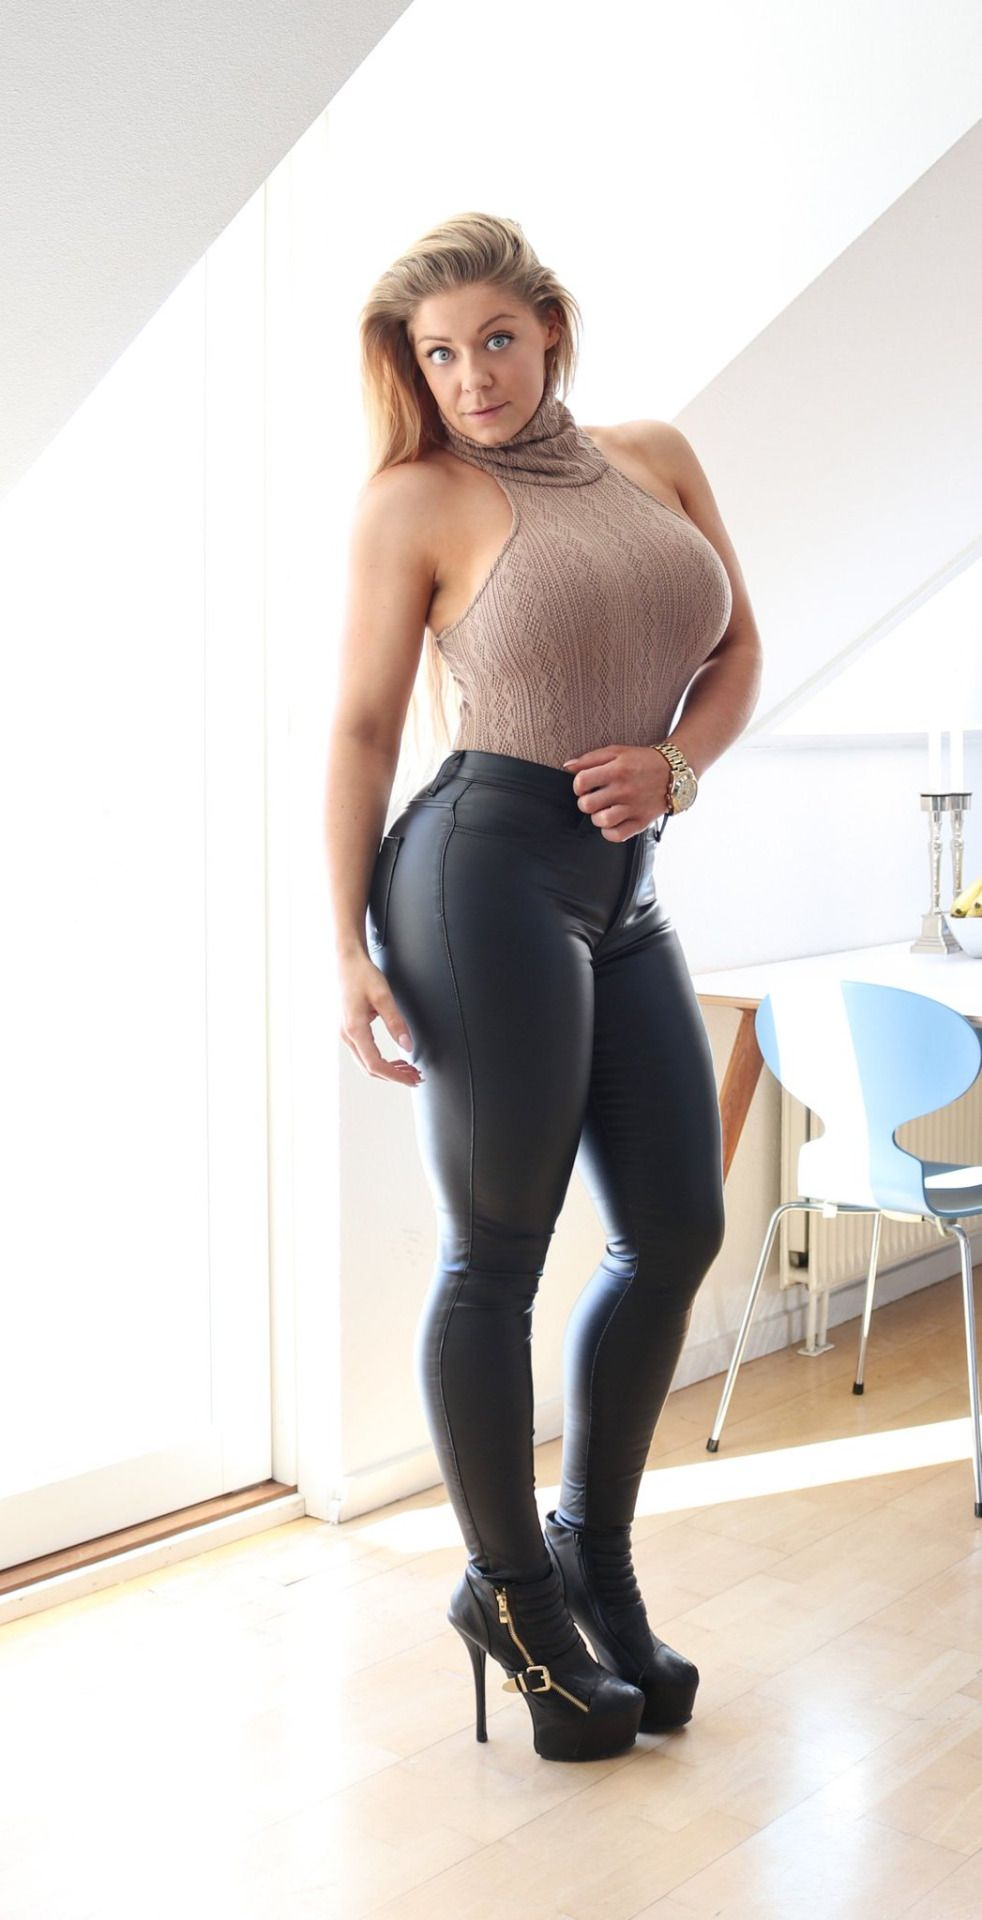 42c94c98 Angels in Tight Leggings and High Heels | Sexy Women in 2019 ...